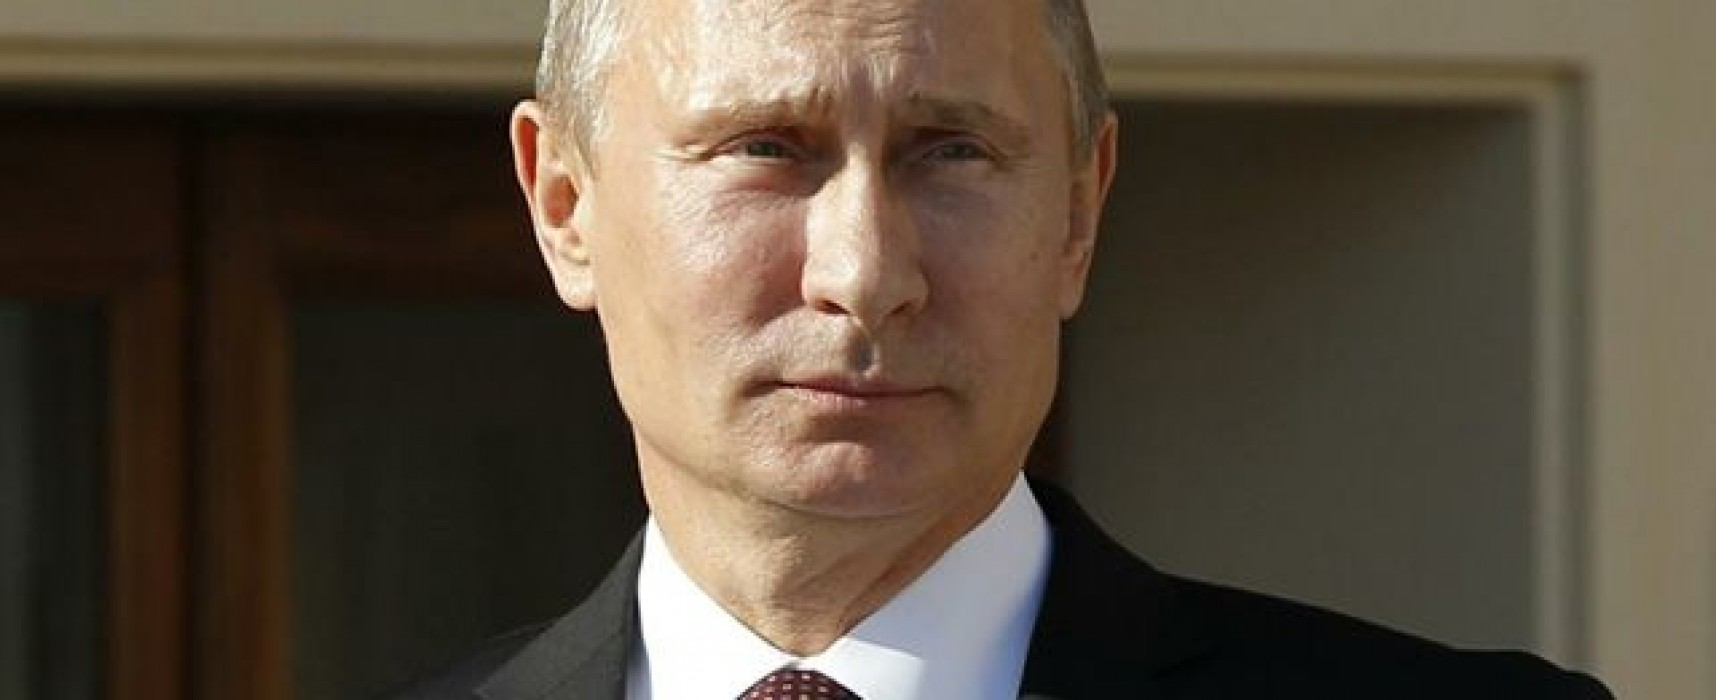 Vladimir Putin Exaggerated the Number of Ukrainian Immigrants in Russia by Five Times